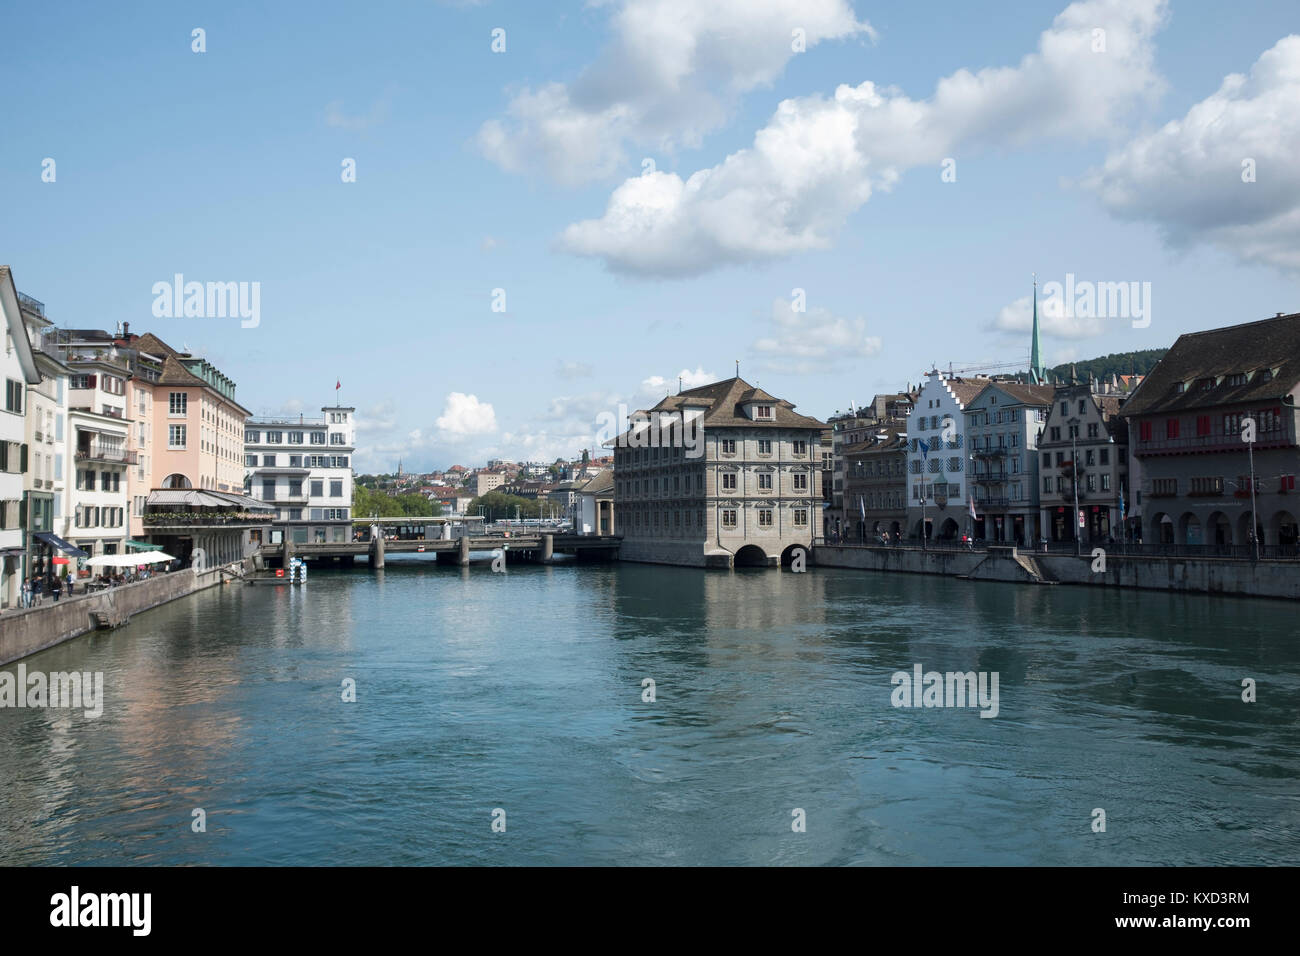 Buildings by Limmat River against sky - Stock Image